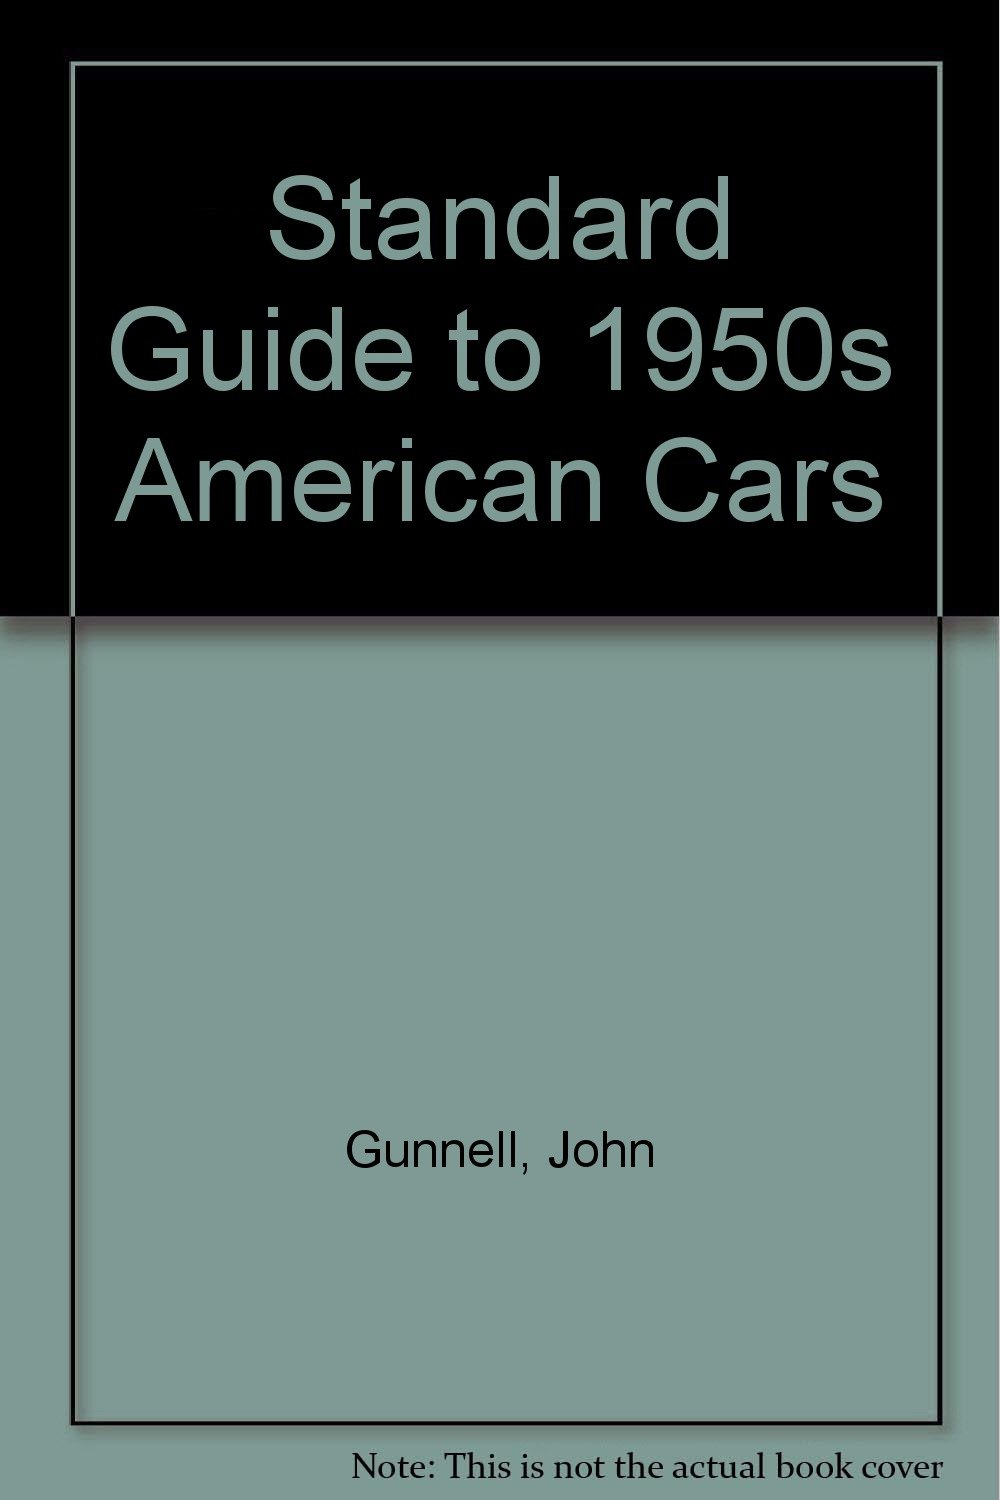 Standard Guide to 1950s American Cars